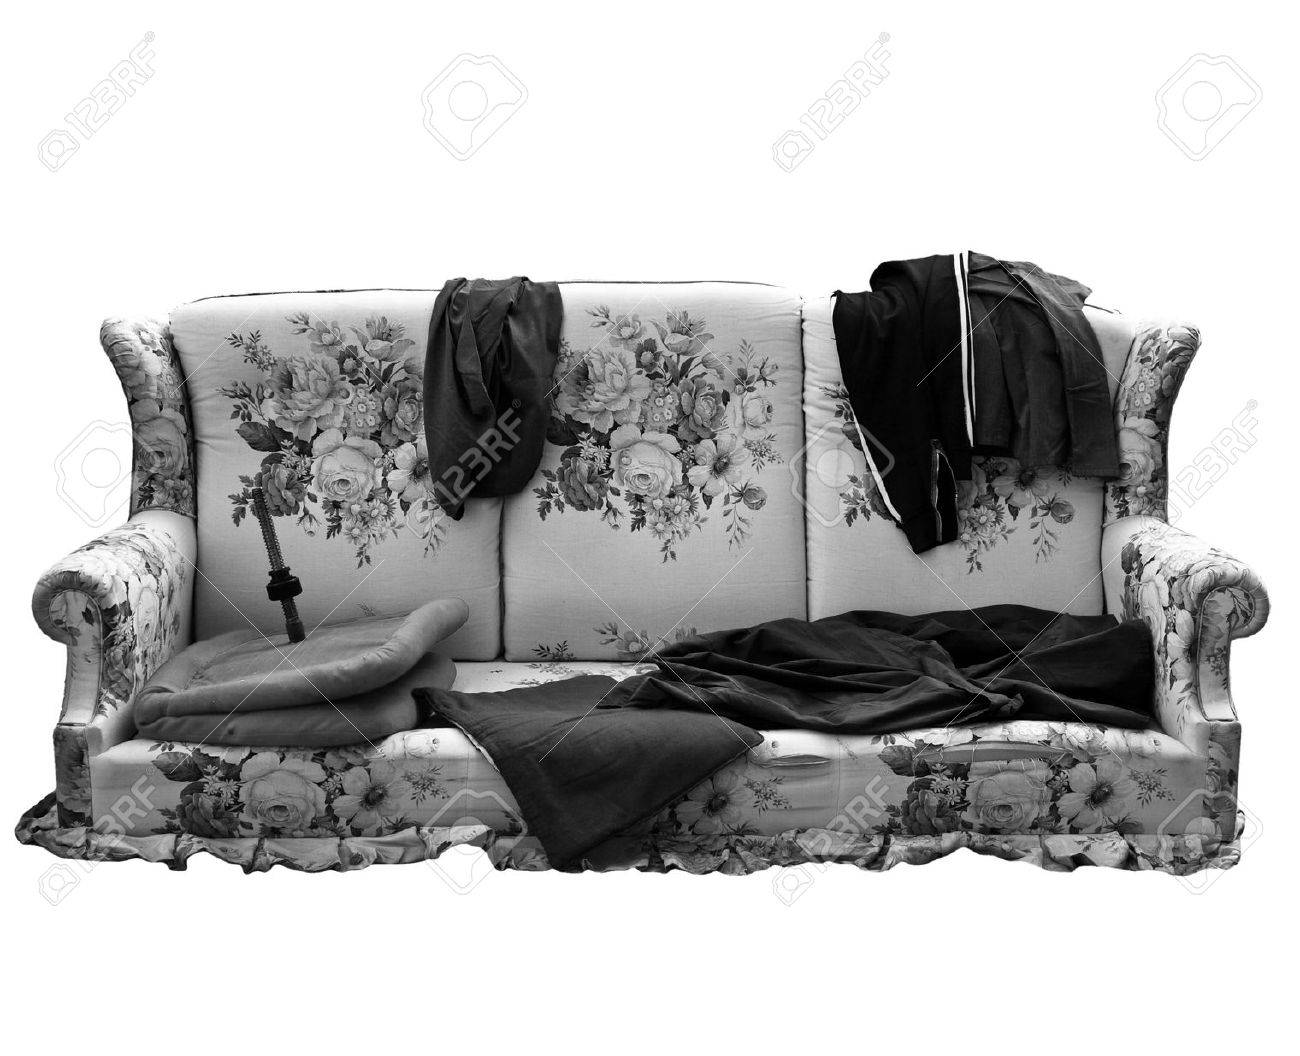 Old Sofa Old Sofa With Clothes Used By Poor Homeless Hobo Stock Photo